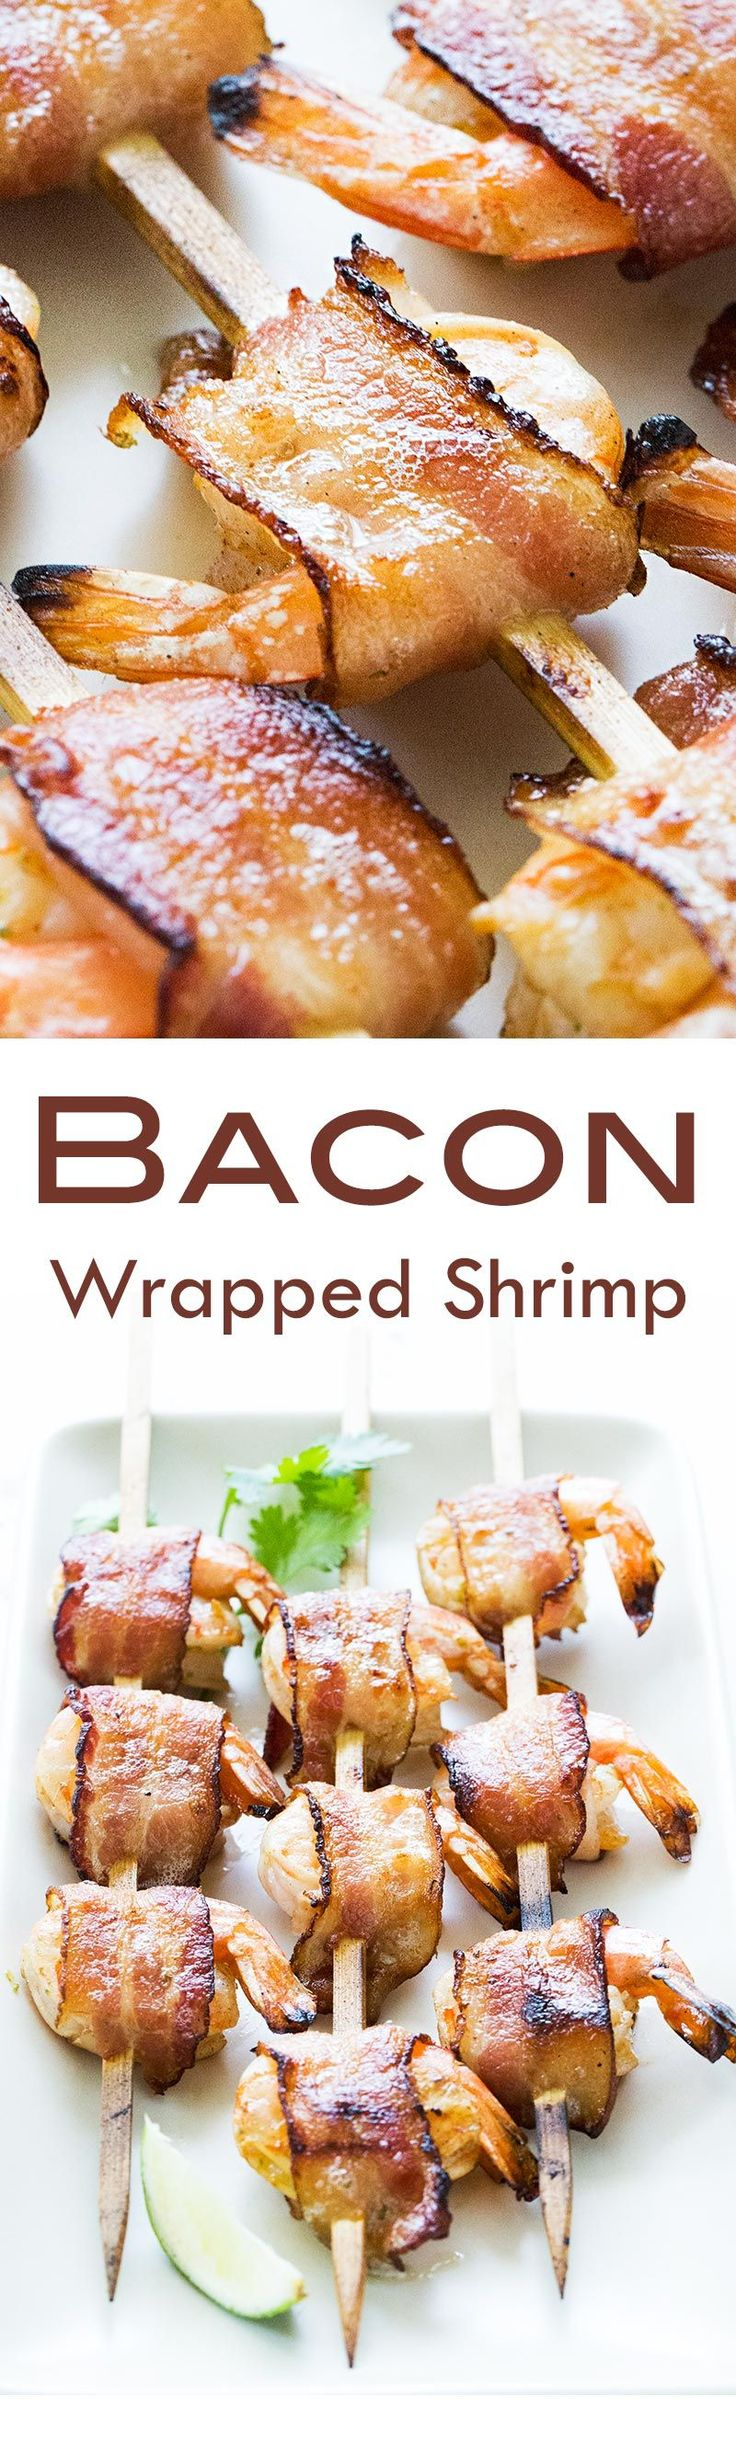 Bacon-wrapped shrimp! Either oven baked or grilled, and seasoned with chili and lime. #Bacon #Shrimp #Grilling #Appetizer